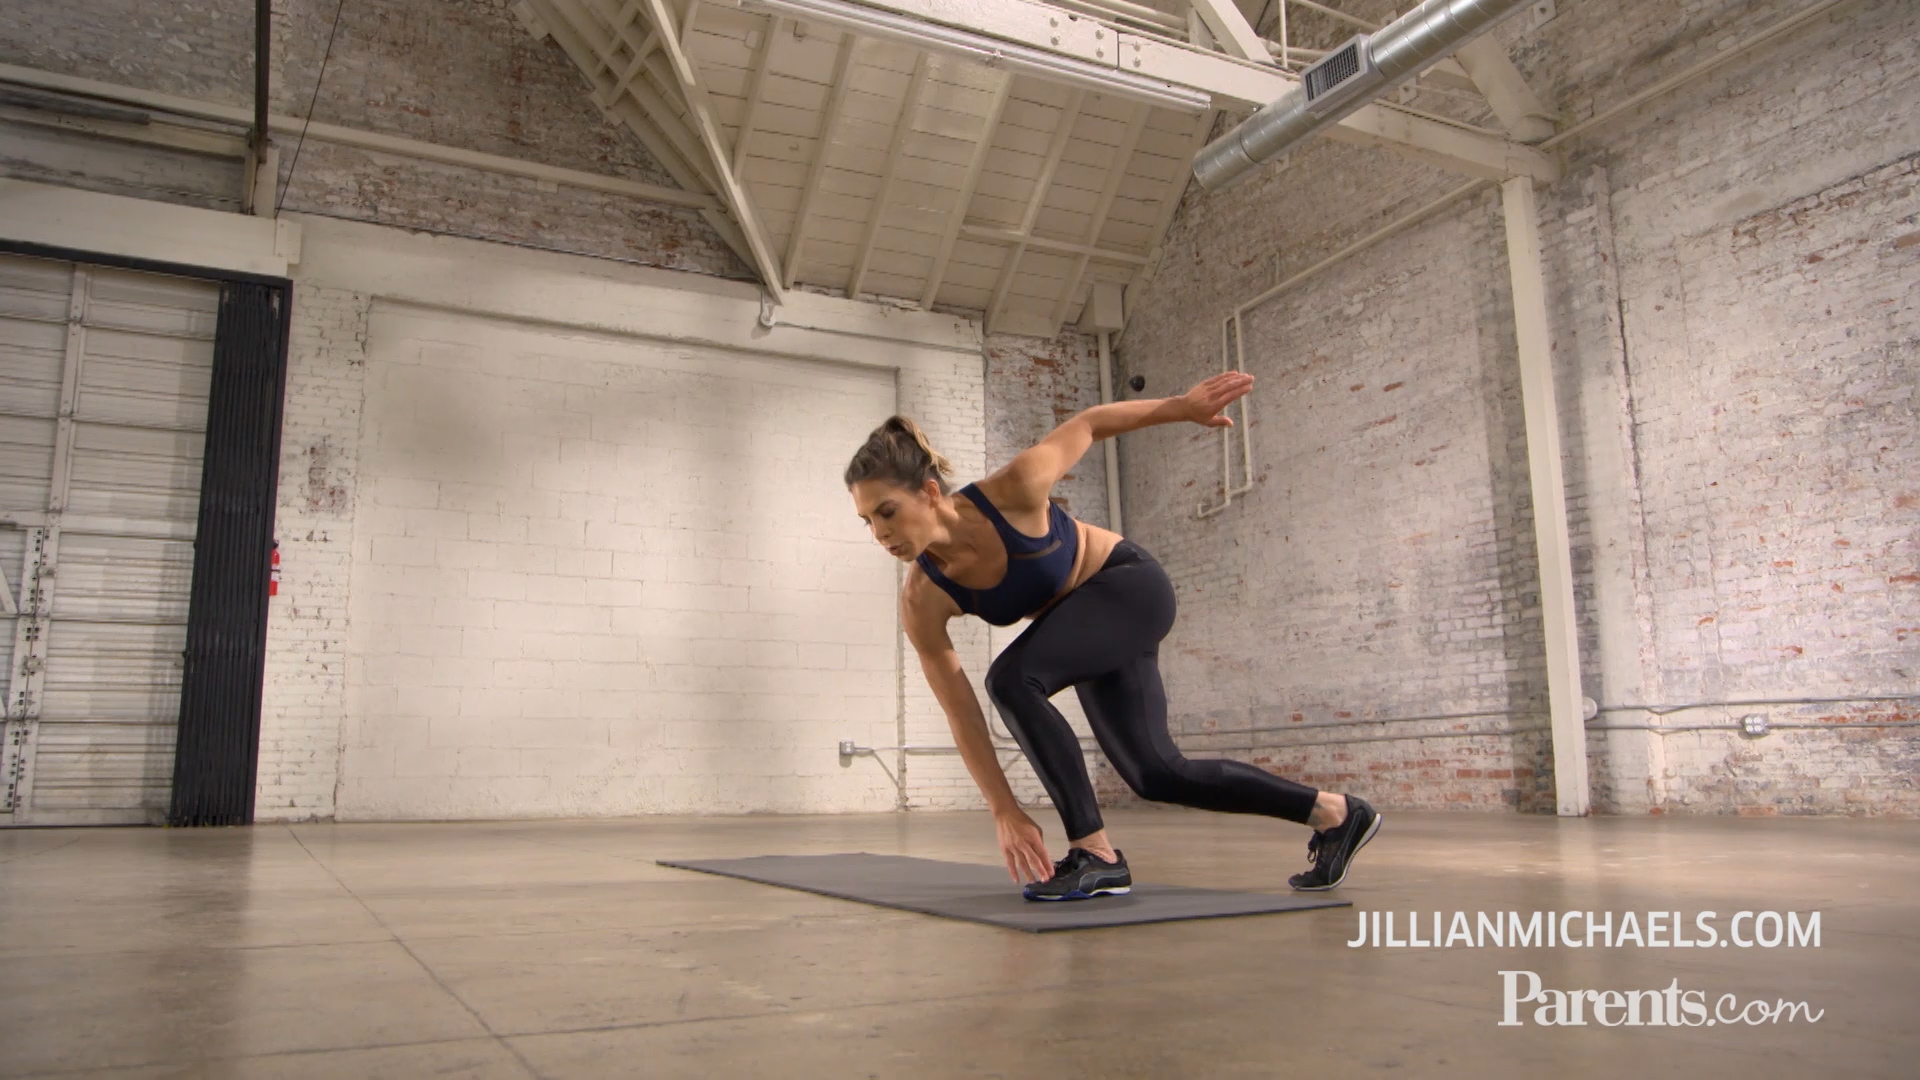 Jillian Michaels' One-Minute Workout for Busy Moms